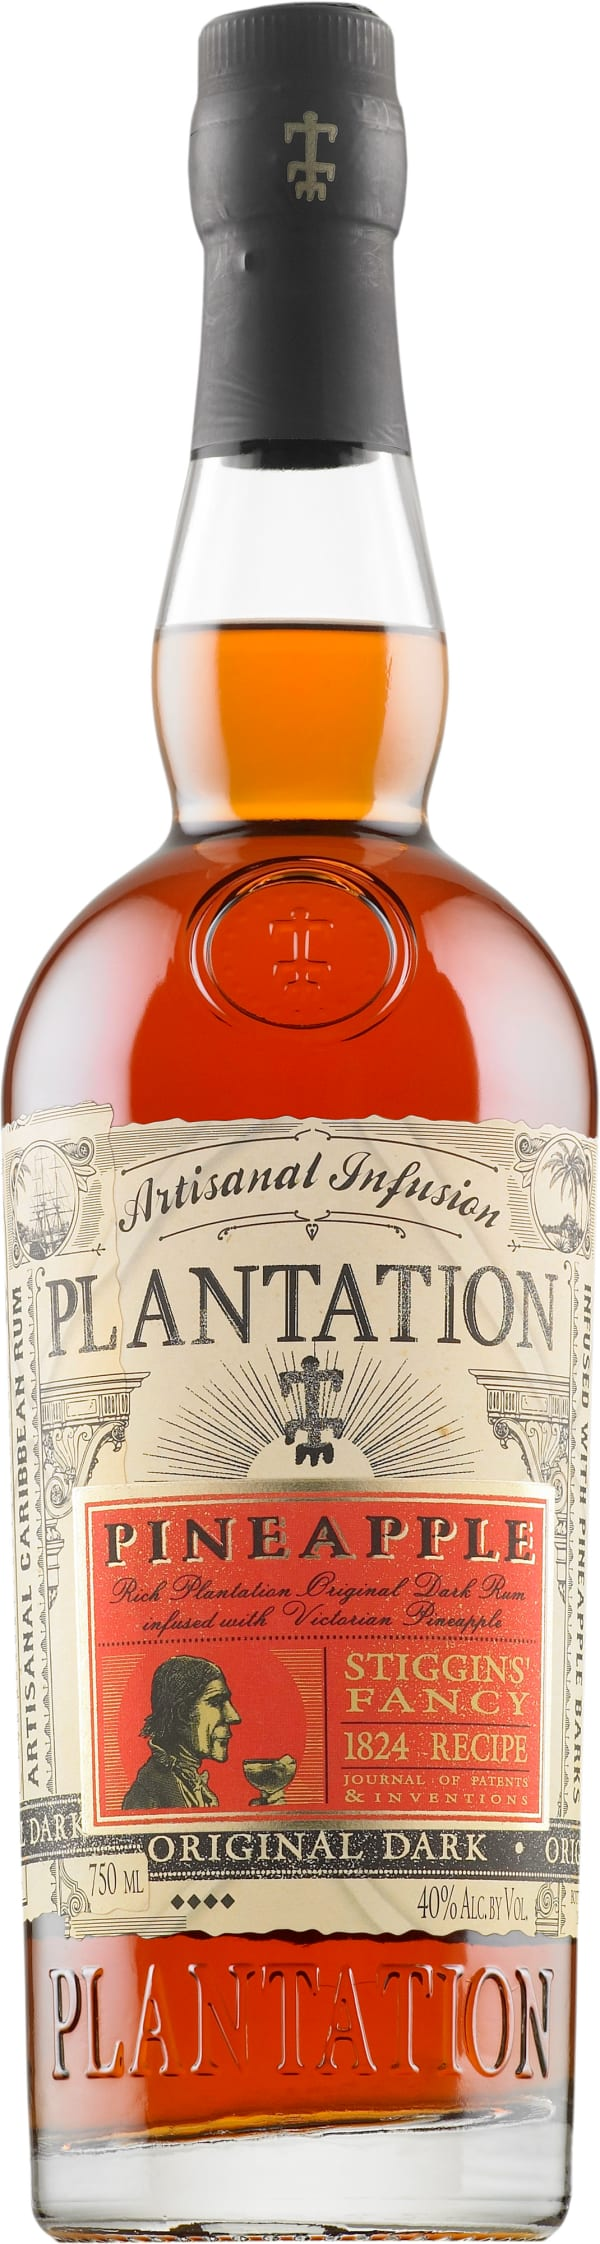 Plantation Original Dark Pineapple